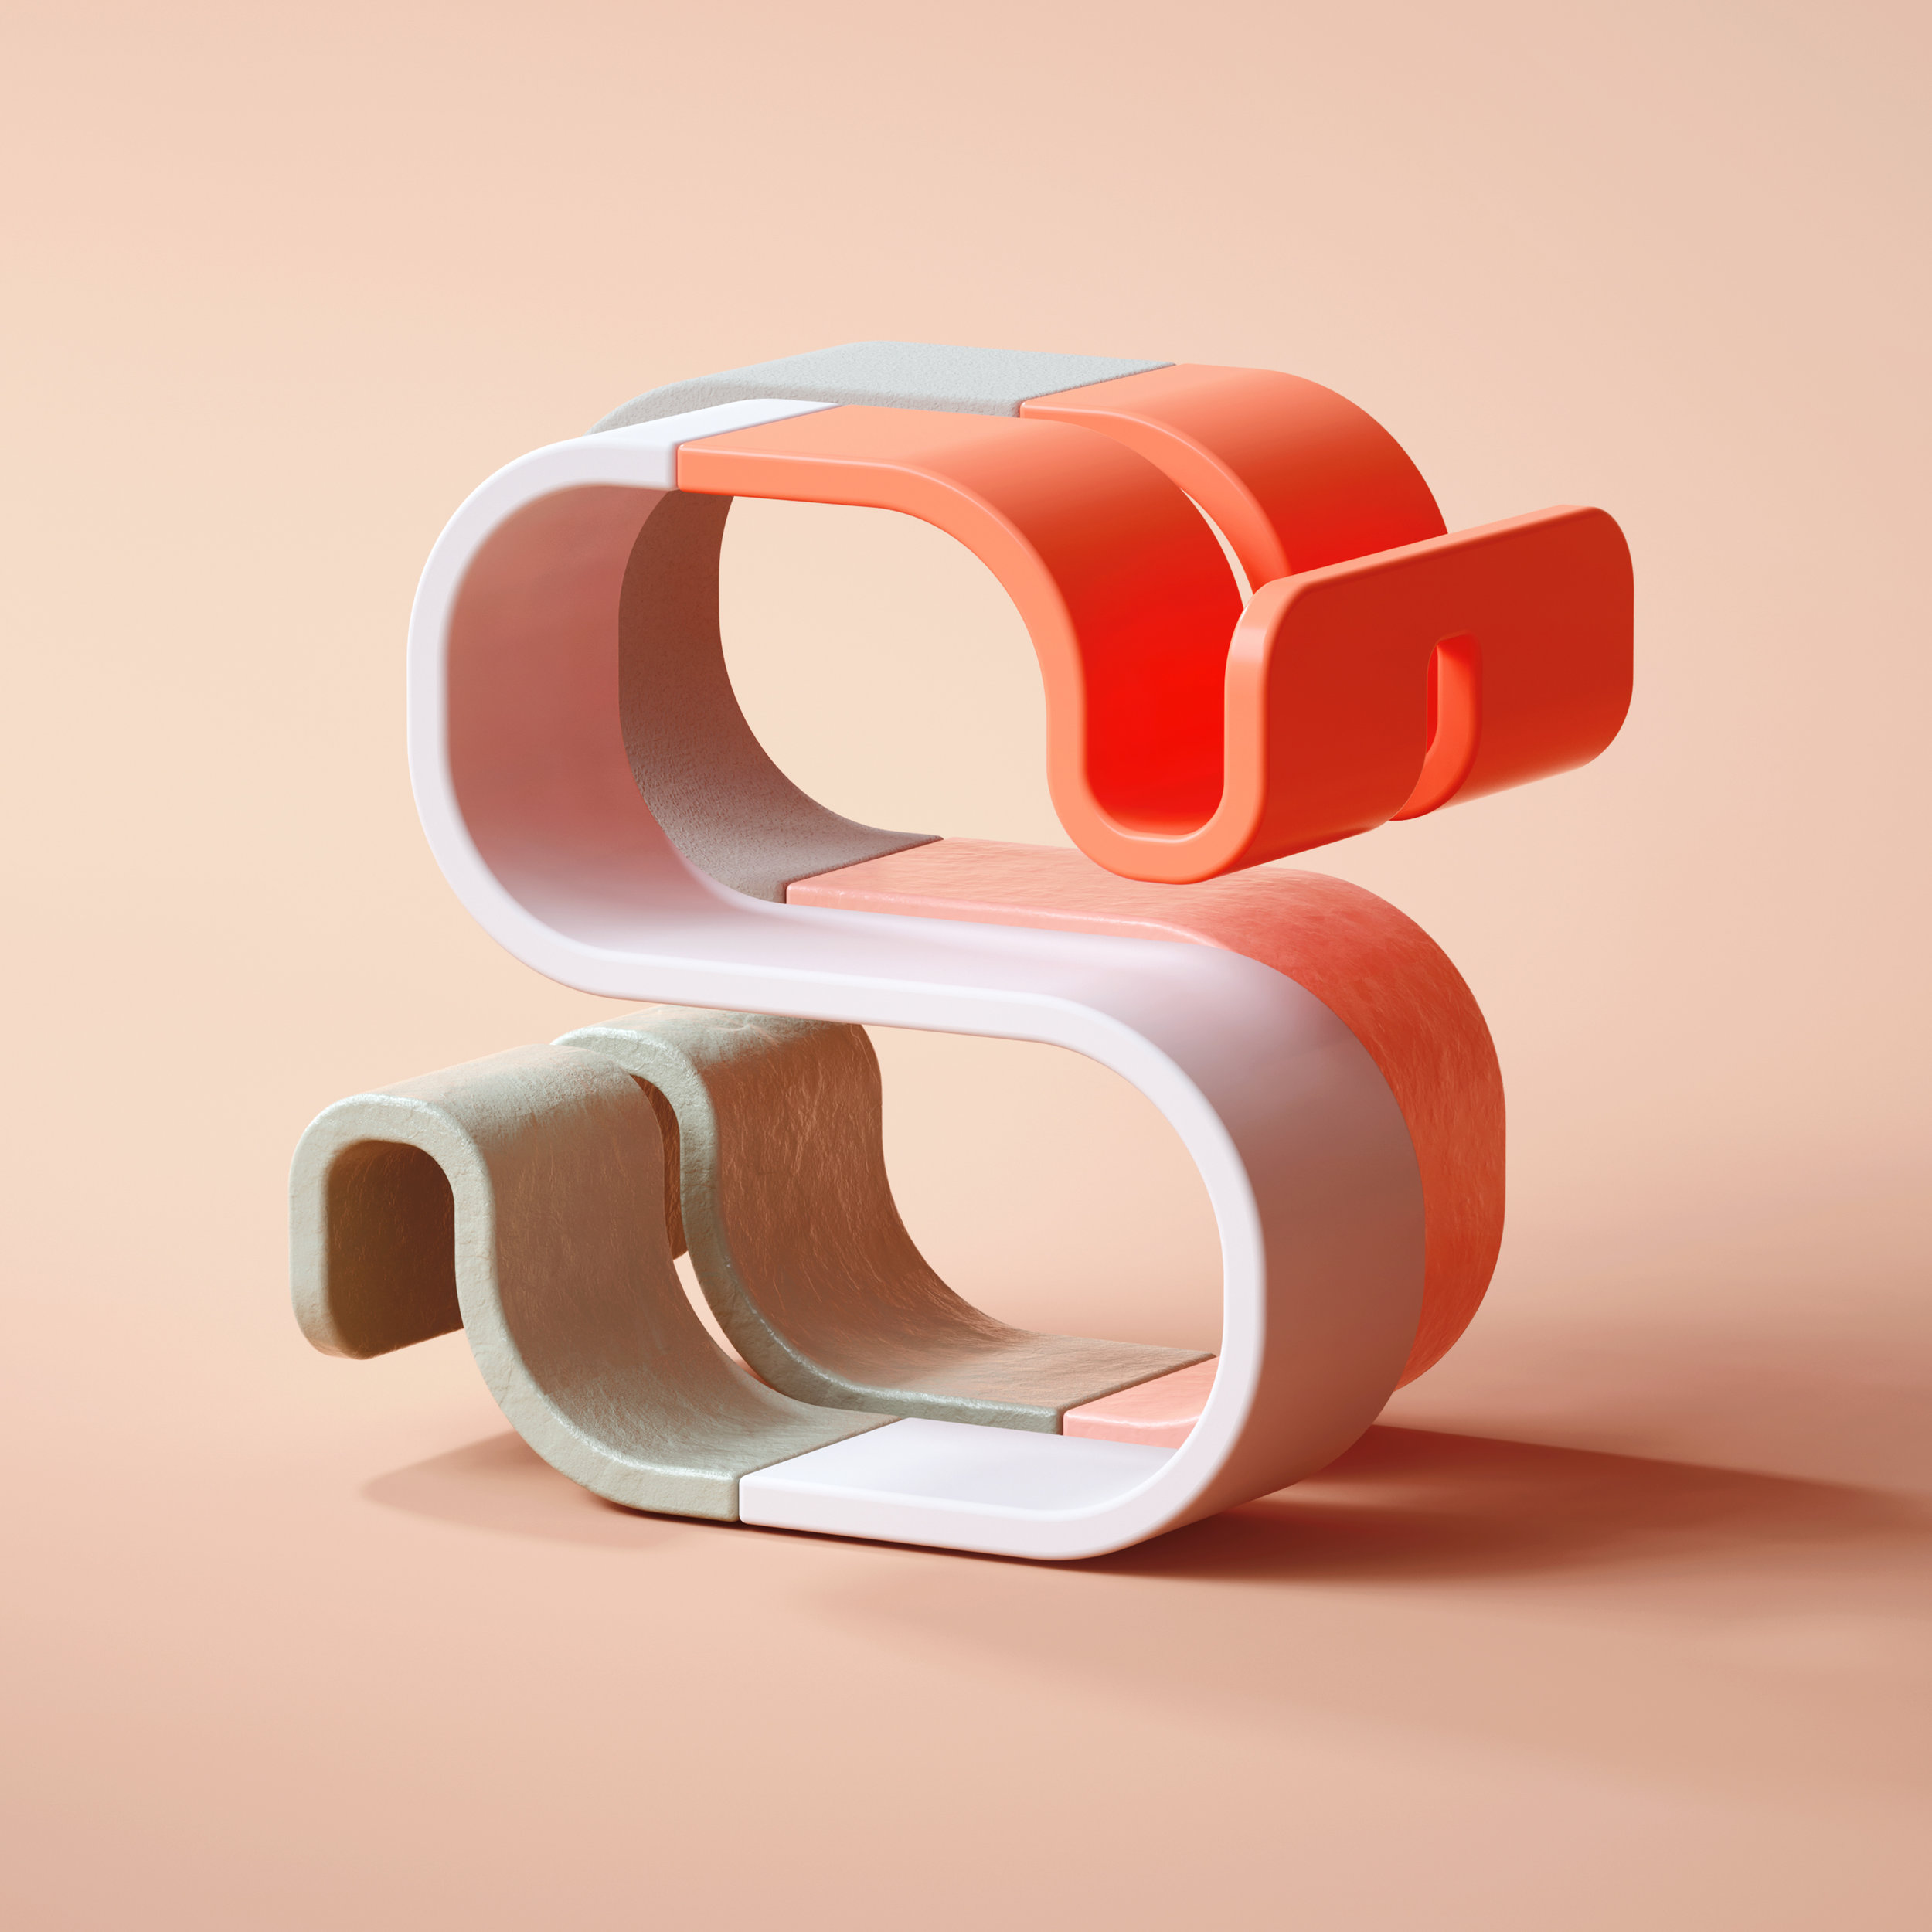 36 Days of Type 2019 - 3D Typeform letter S visual.